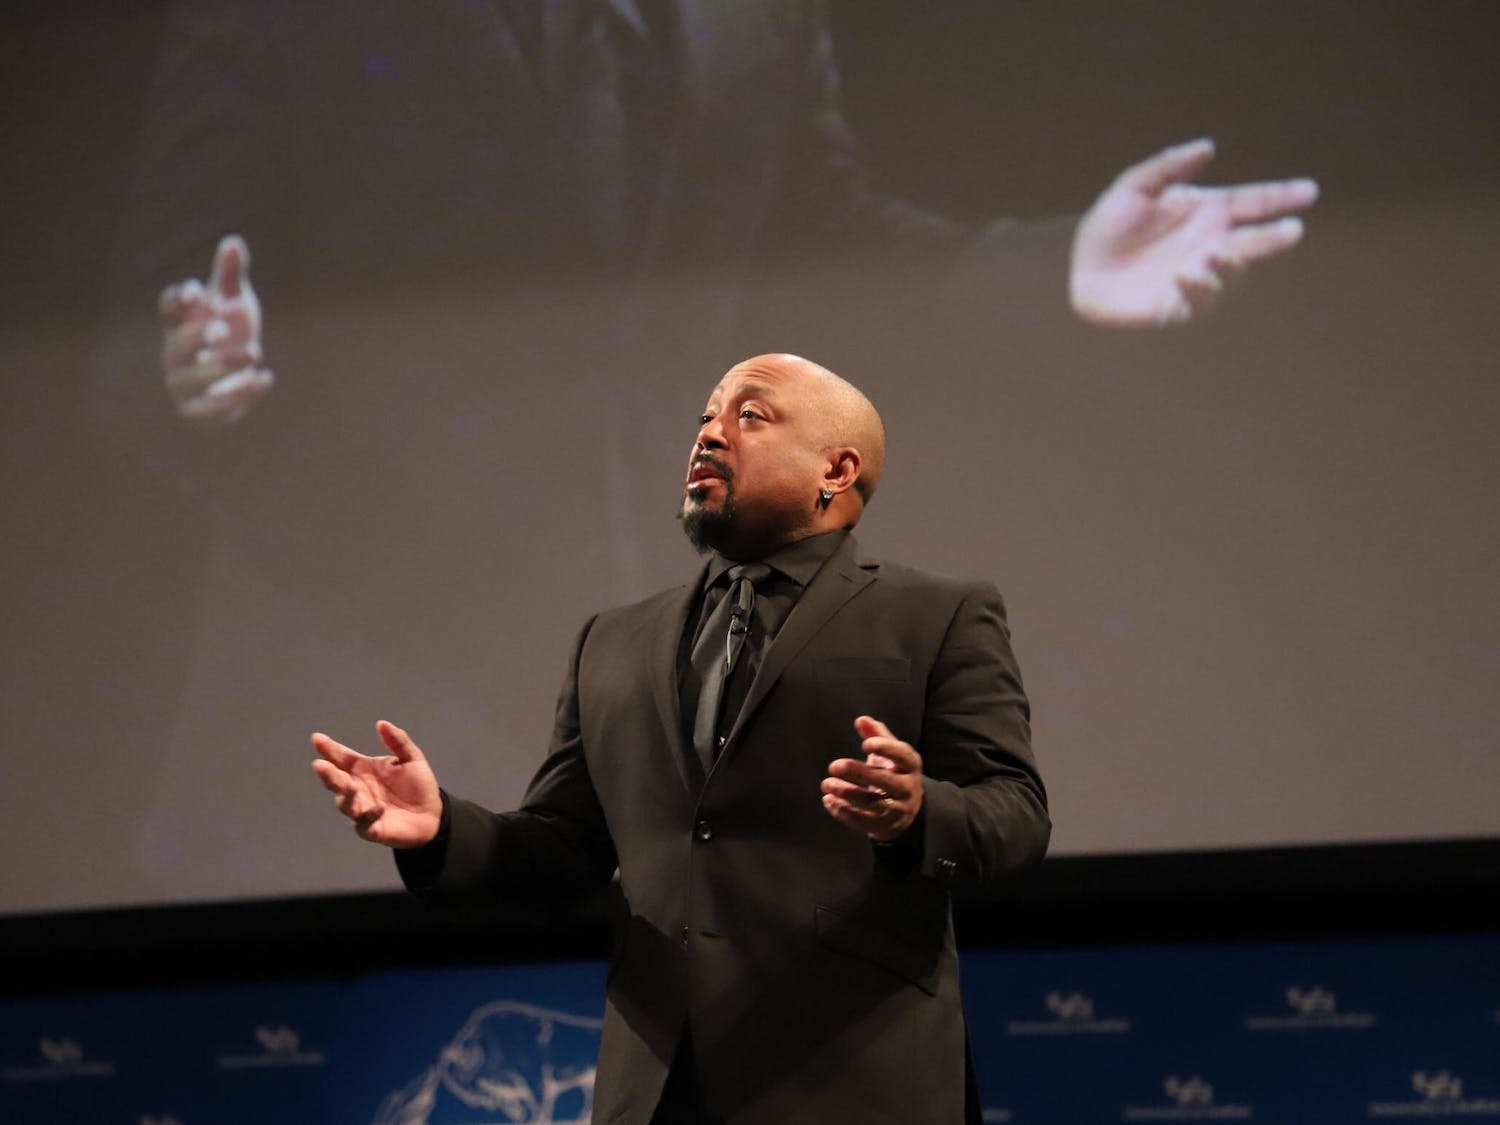 Shark Tank investor and FUBU founder Daymond John talks business at the Center for the Arts.